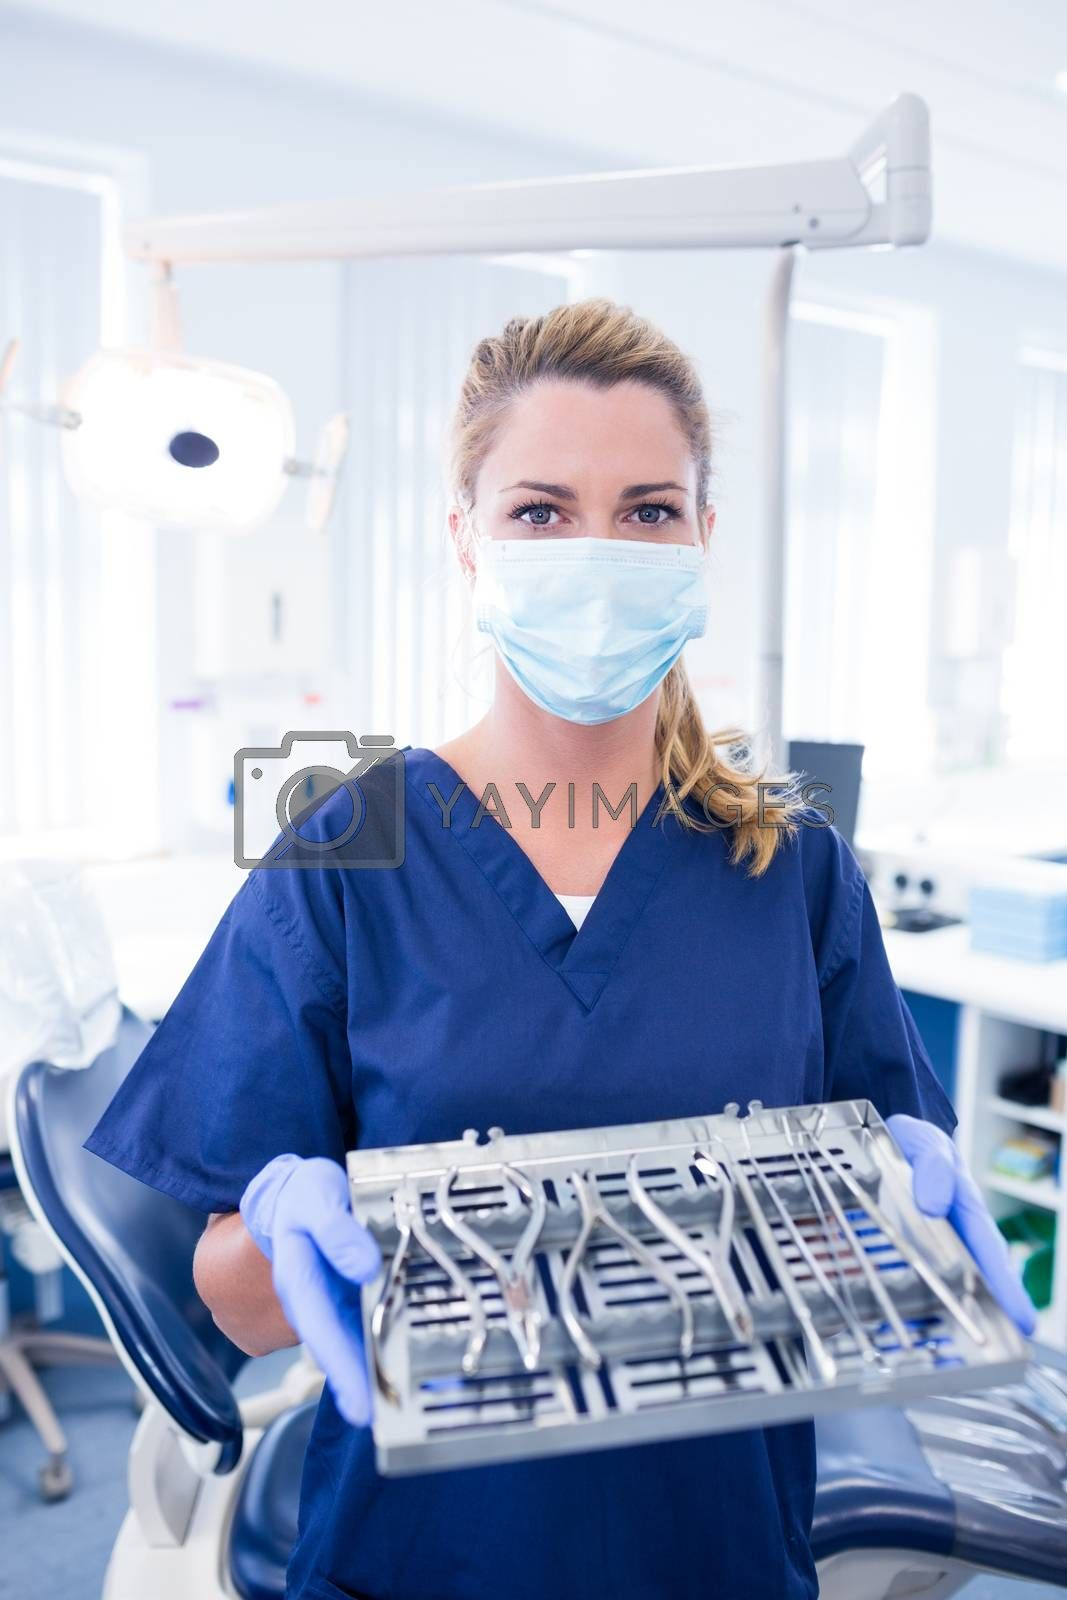 Dentist in blue scrubs offering tray of tools at the dental clinic